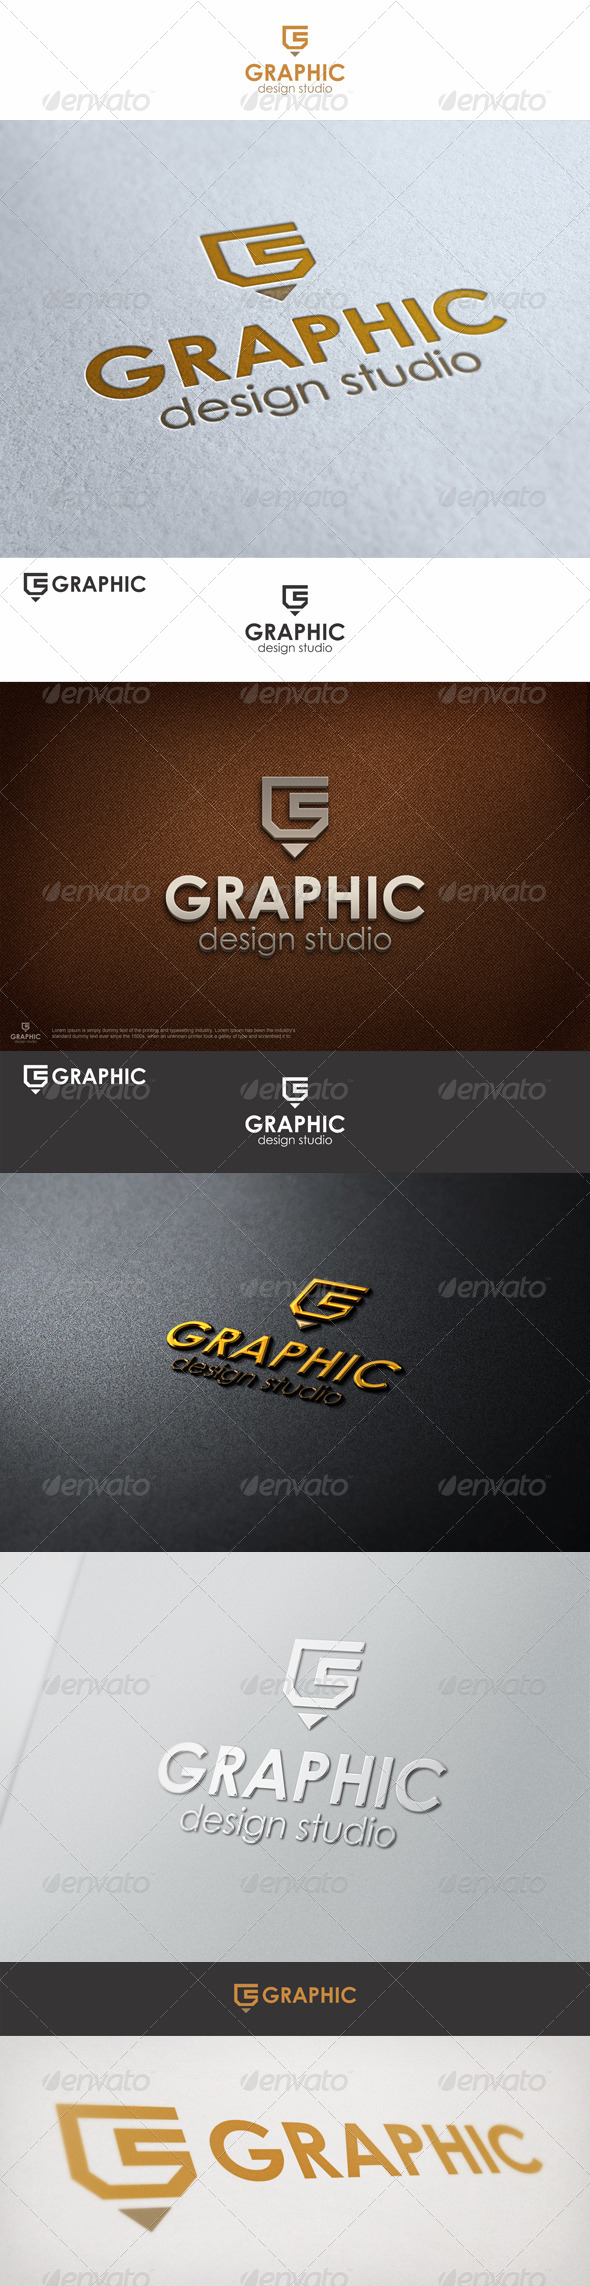 Graphic Pencil Studio Logo G